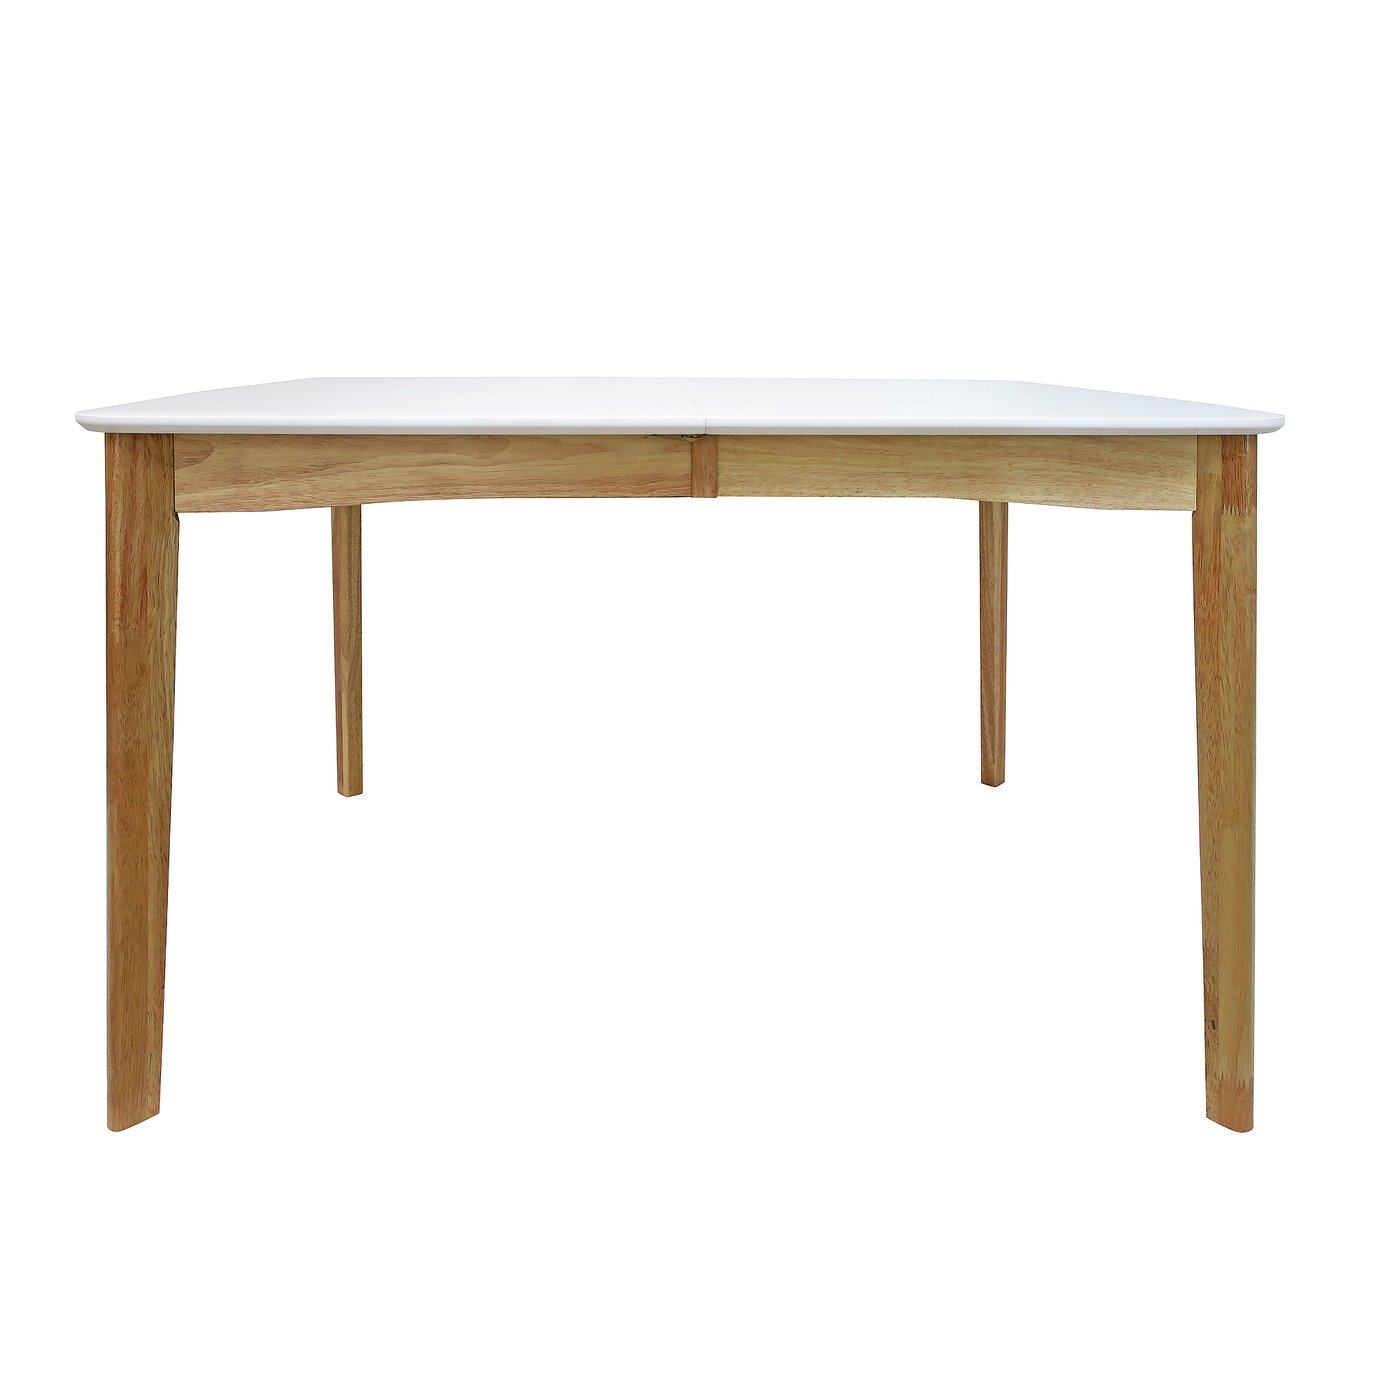 Thisted 6 - 8 Seater Extending Solid Wood Dining Table